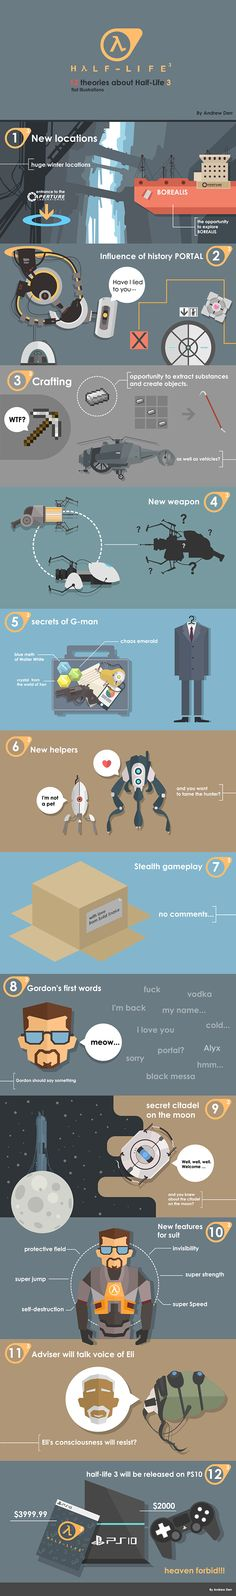 12 theories about Half-Life3. Flat illustrations. on Behance